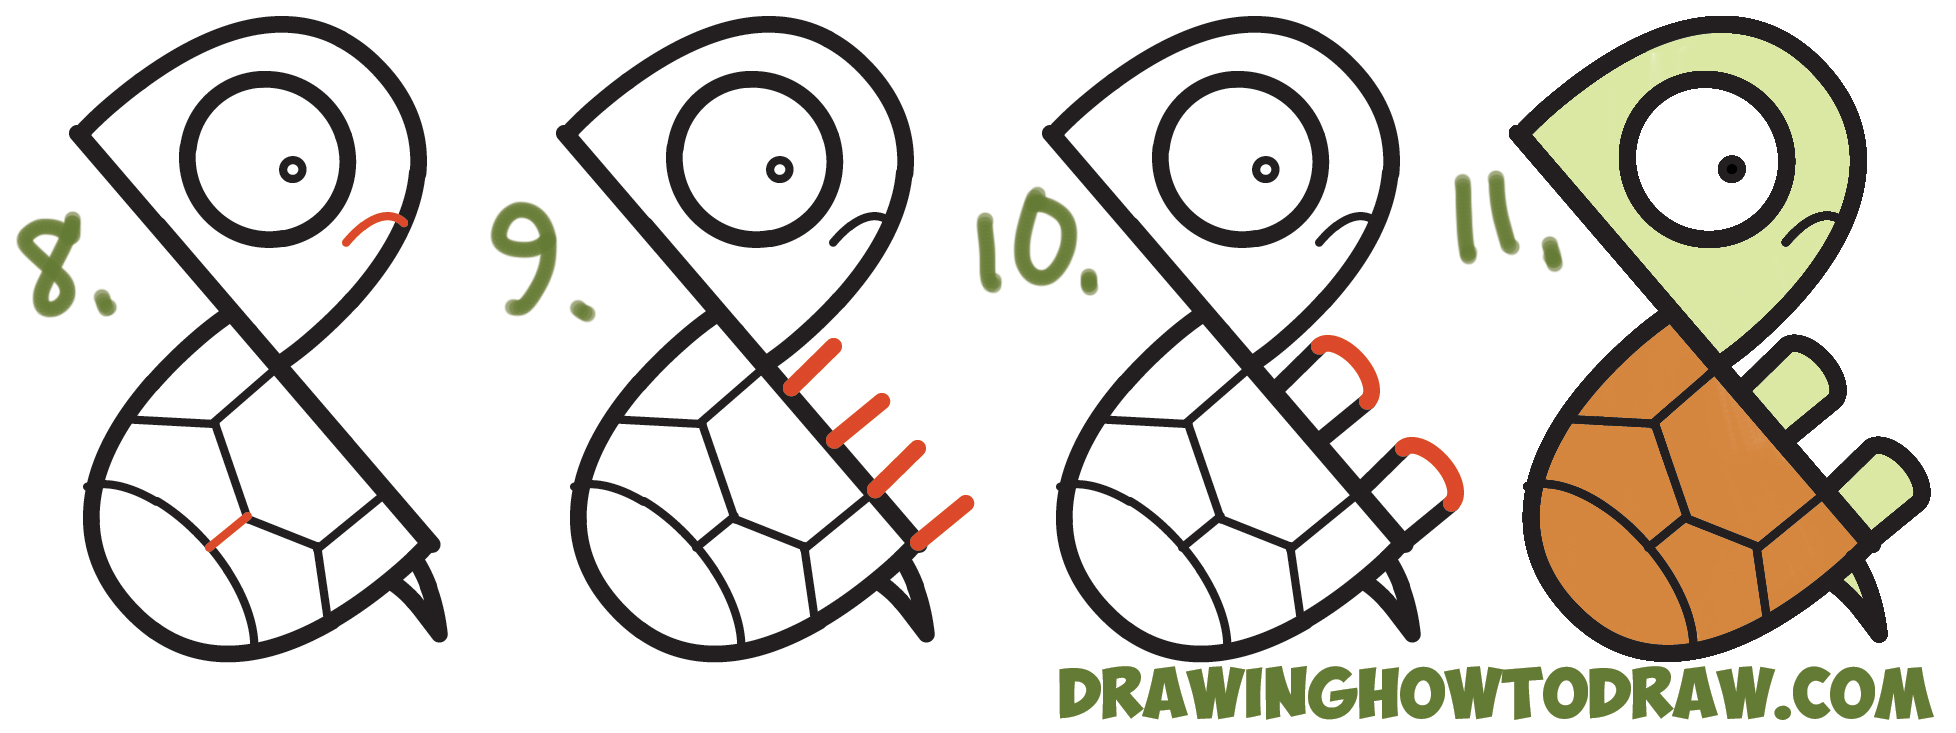 "Learn How to Draw a Cute Cartoon Turtle from Letter ""P"" Shapes Simple Steps Drawing Lesson for Children & Beginners"